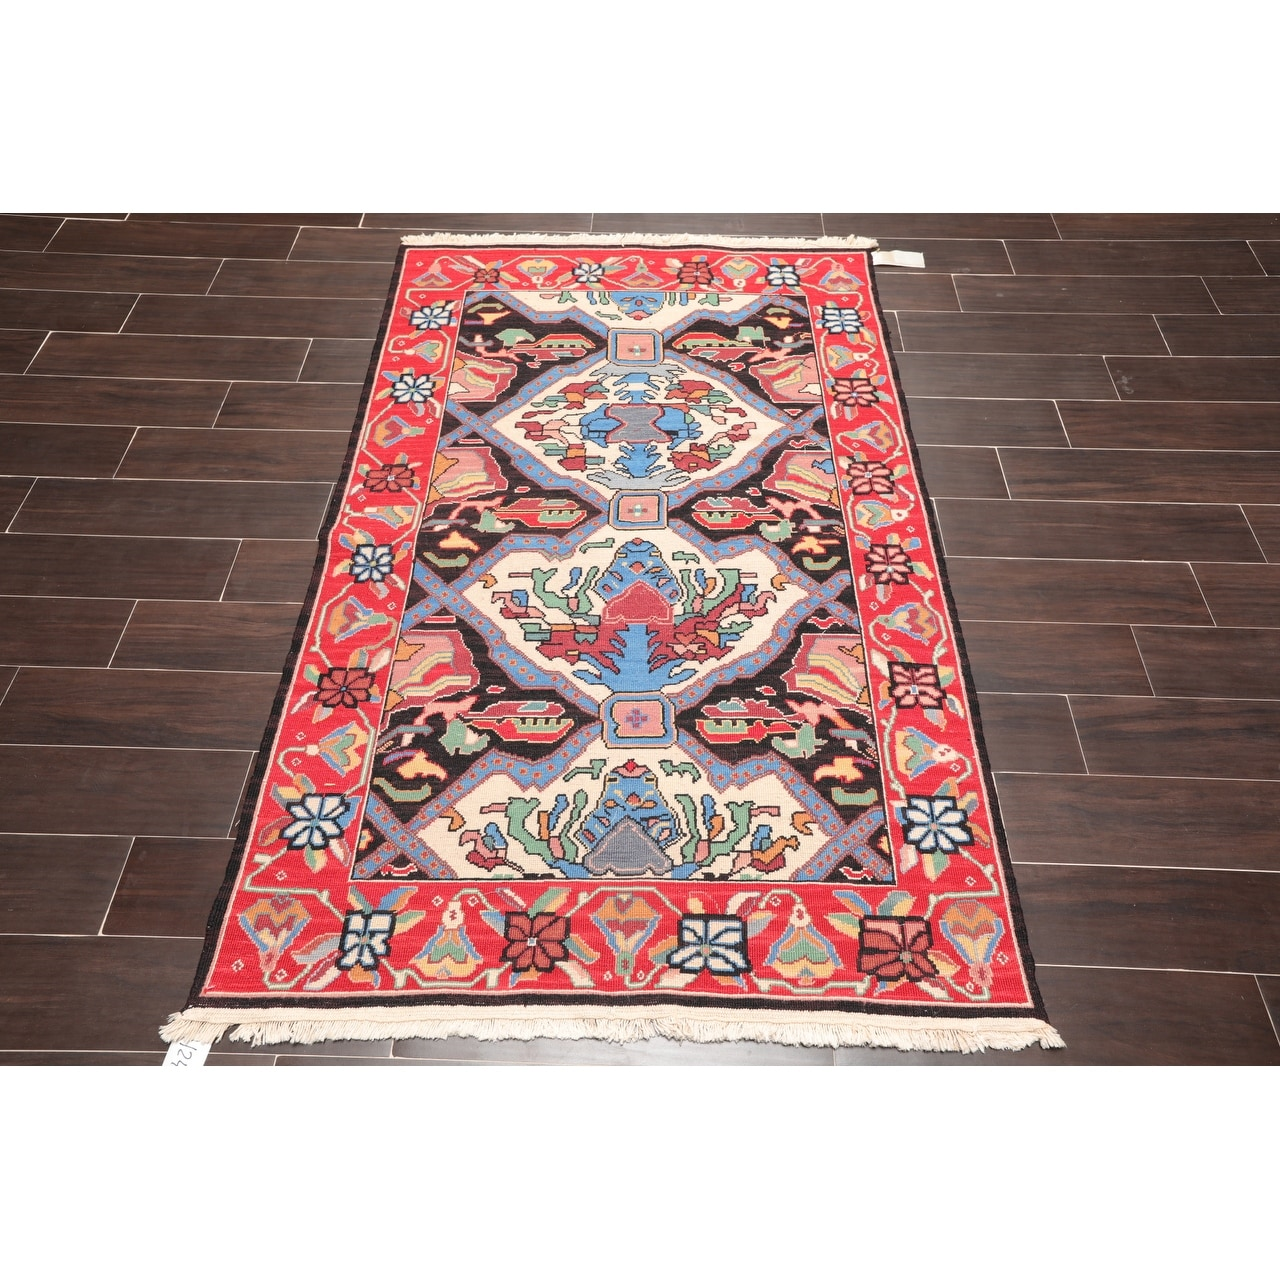 Hand Knotted Reversible Nourison Nourmak Mission Style Black Red Oriental Area Rug Wool Arts Crafts Oriental Area Rug 3x5 On Sale Overstock 31305082